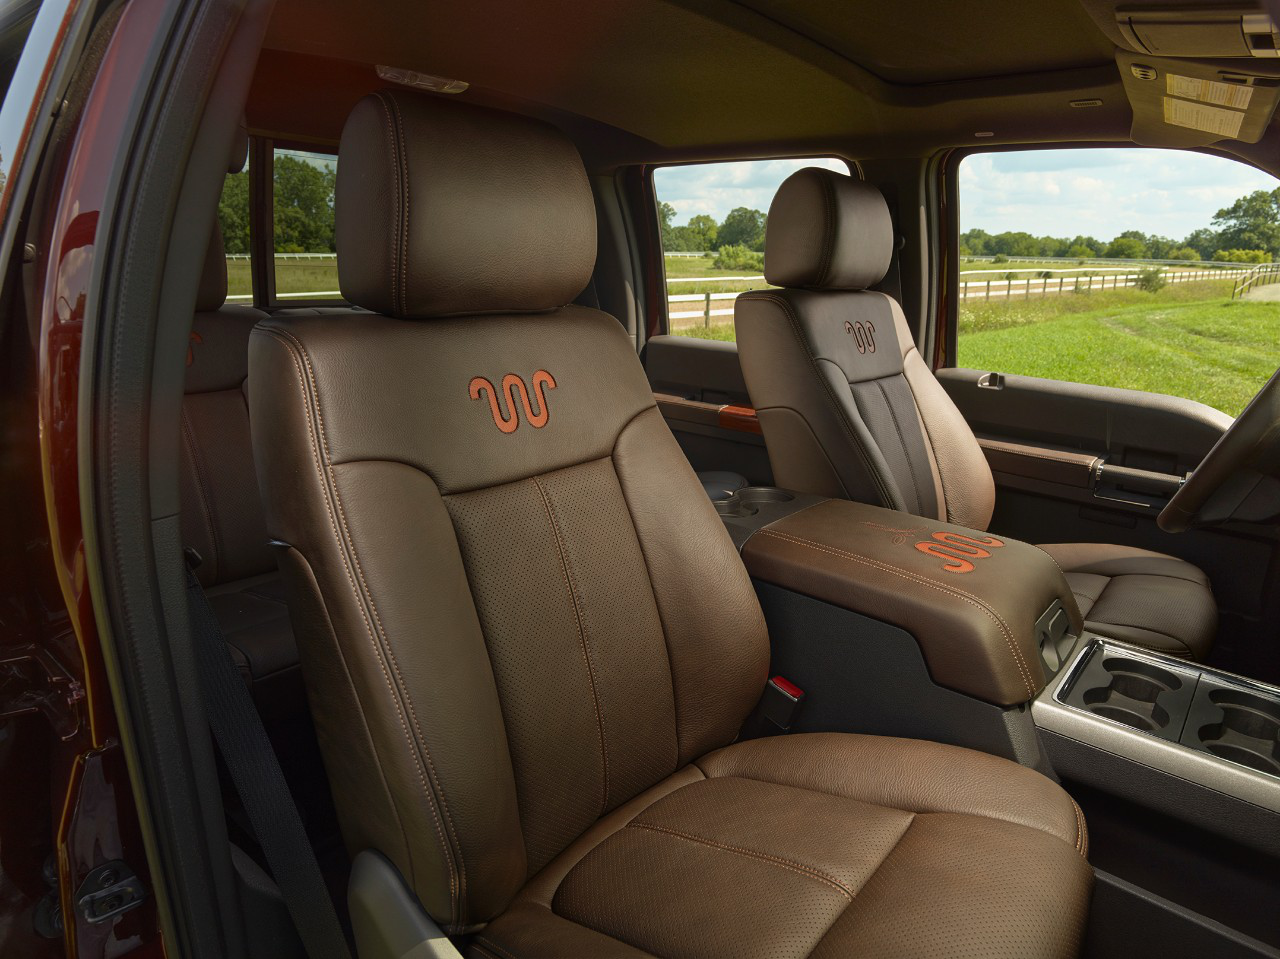 2015 Ford F-250 King Ranch Super Duty interior